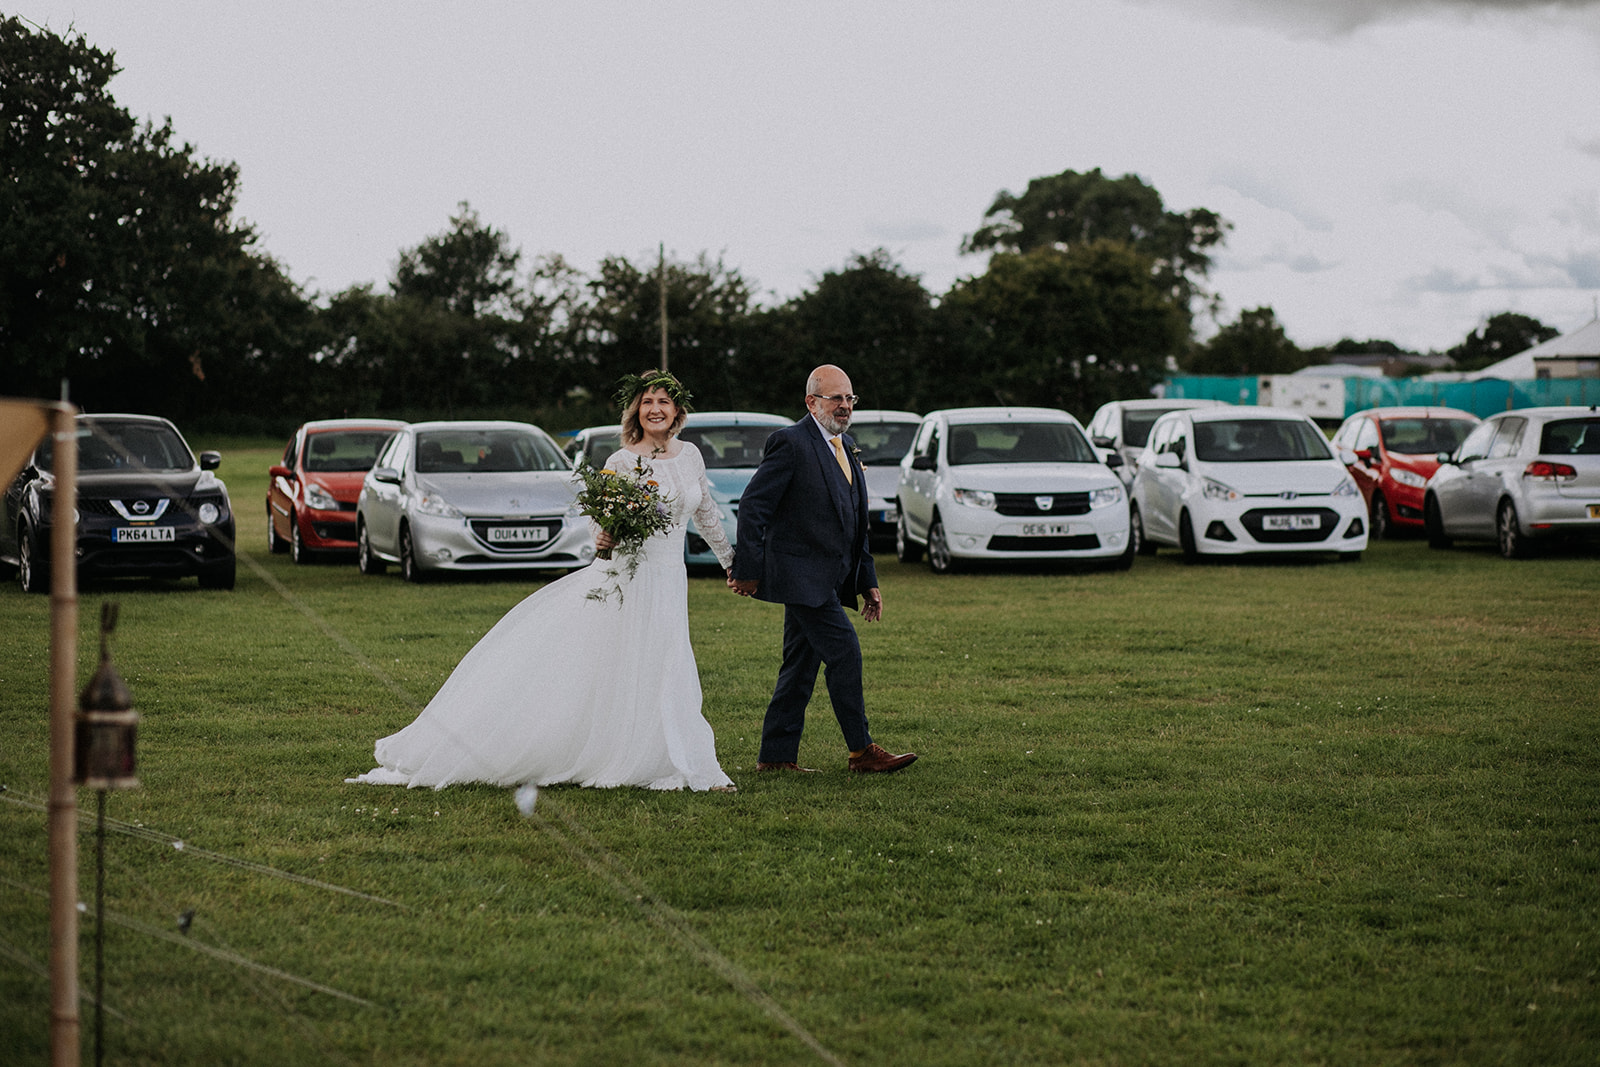 Bride arriving to Cattows Farm wedding ceremony with father